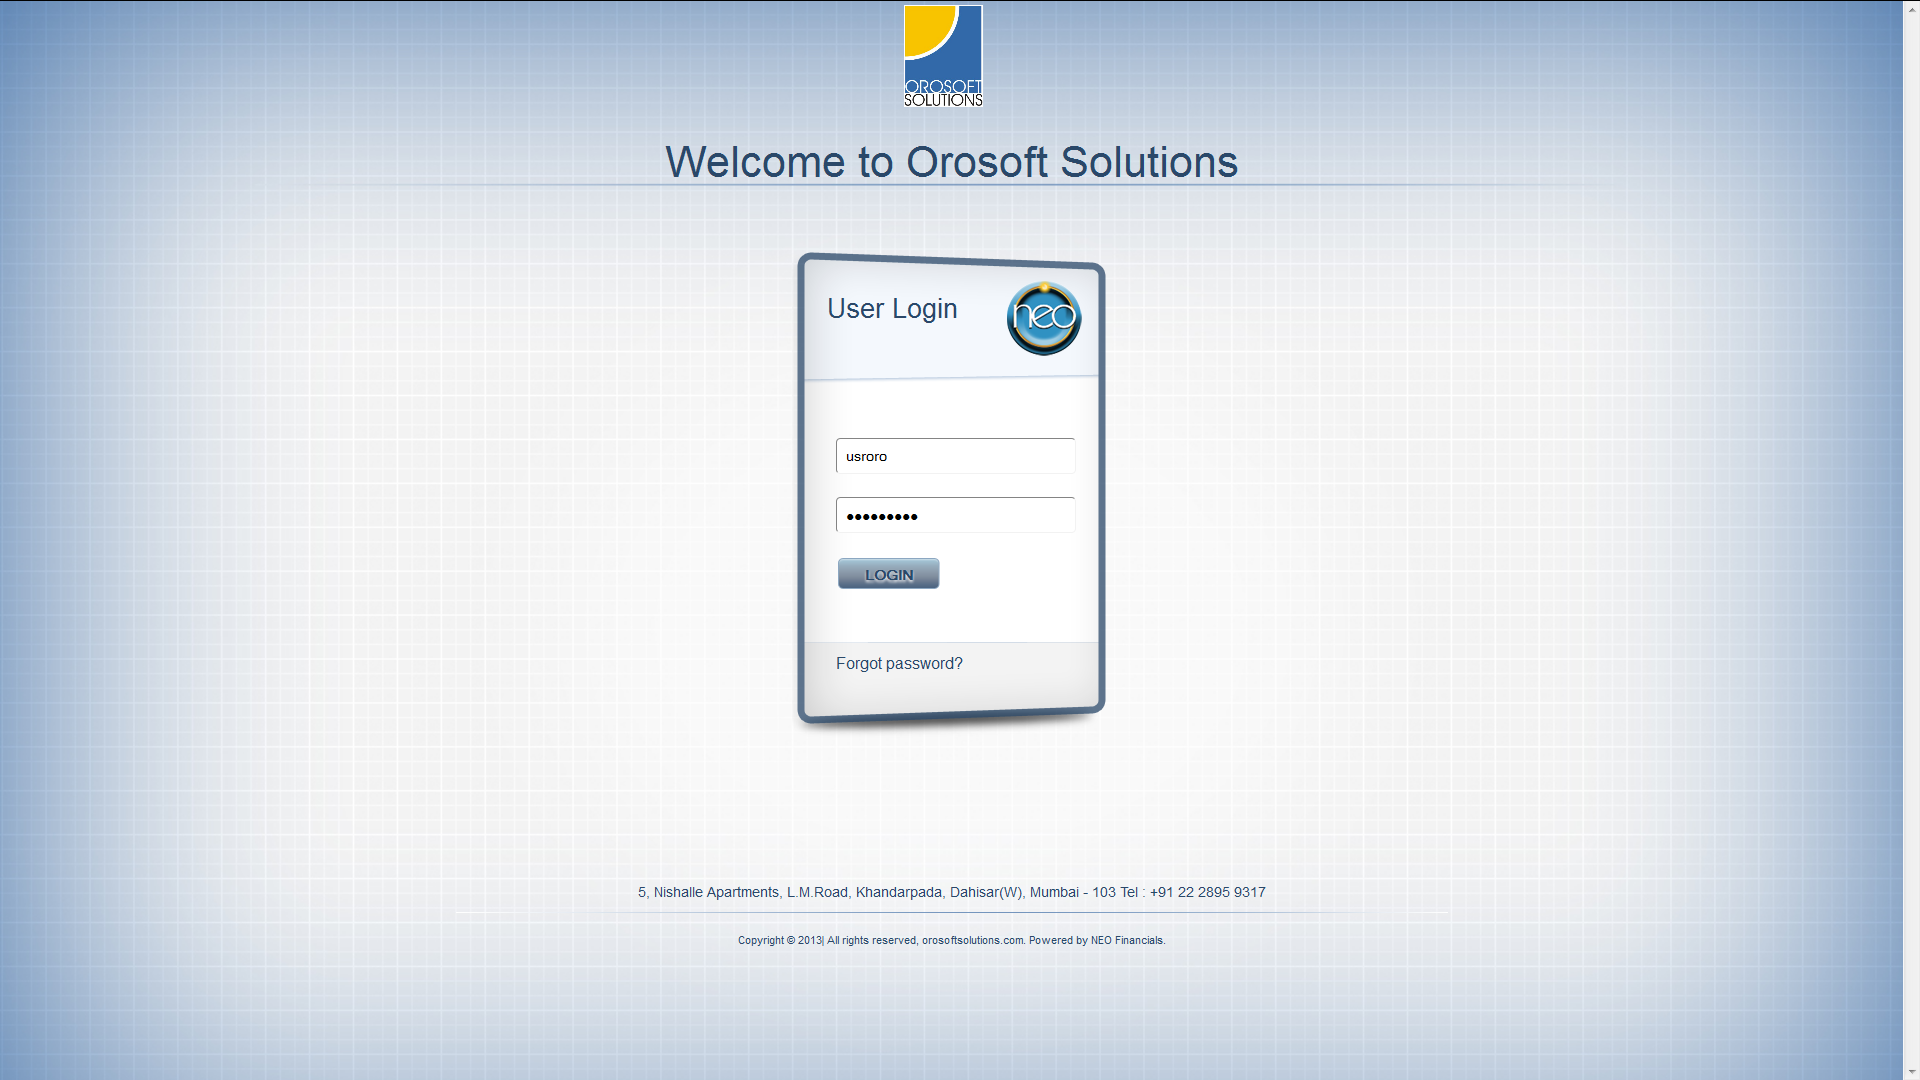 http://orosoftsolutions.com/wp-content/uploads/2016/10/Login-Page.png